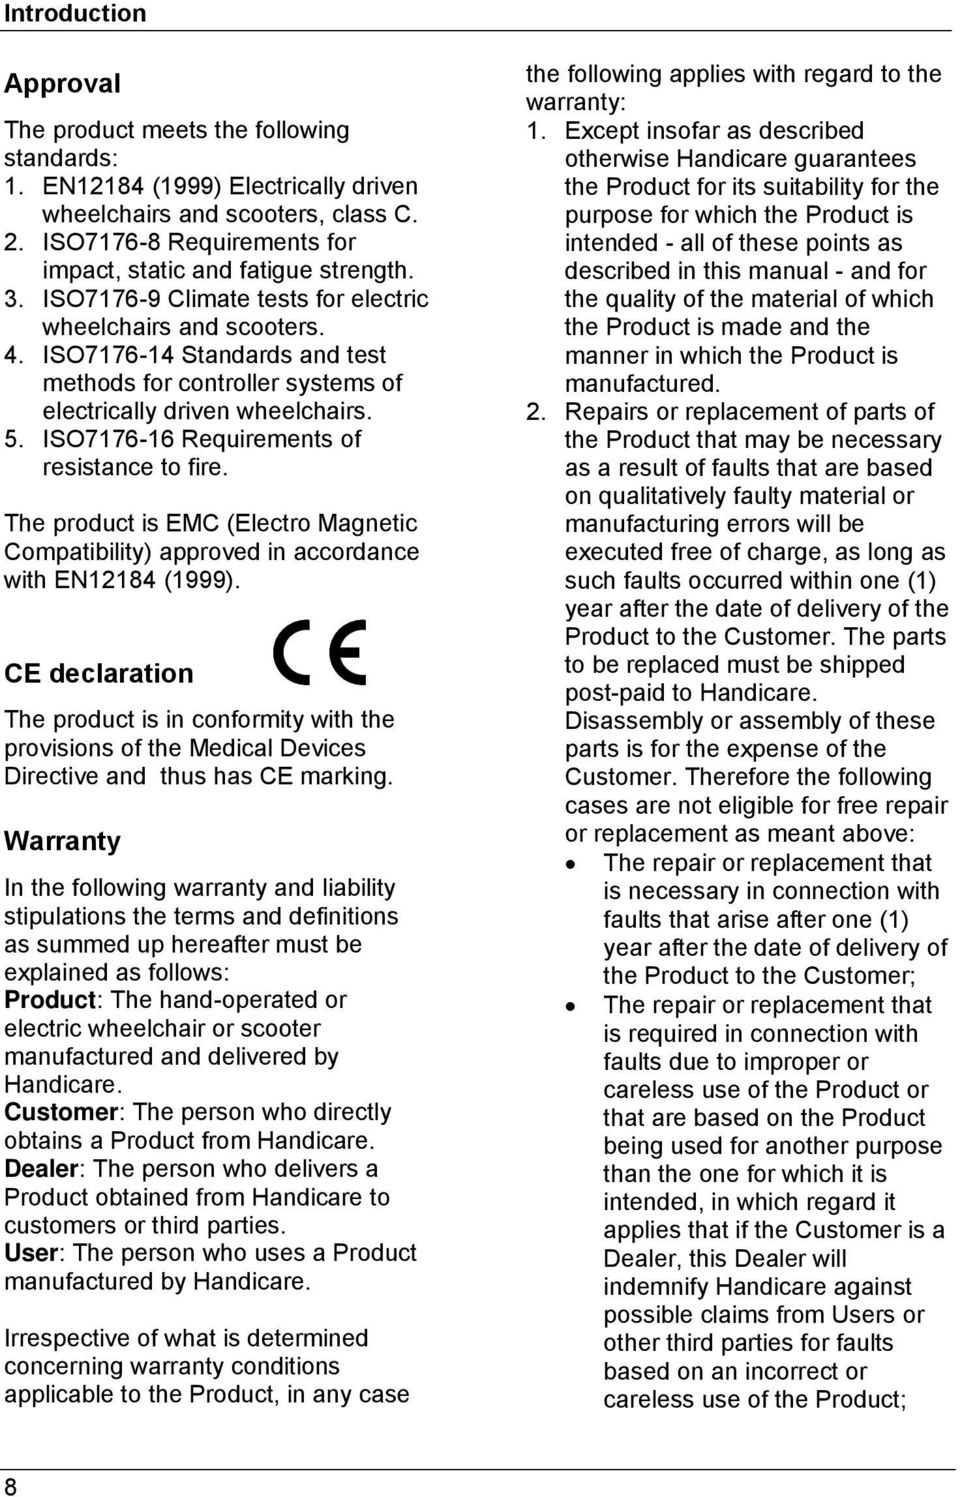 ISO7176-14 Standards and test methods for controller systems of electrically driven wheelchairs. 5. ISO7176-16 Requirements of resistance to fire.